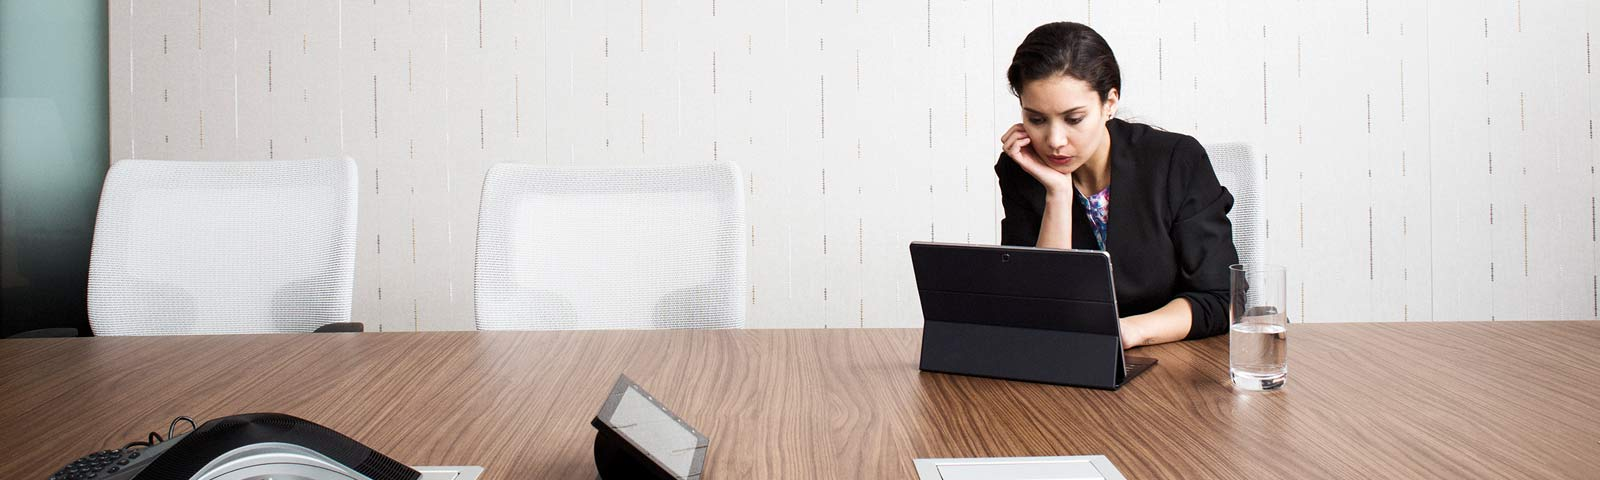 Woman working alone in conference room